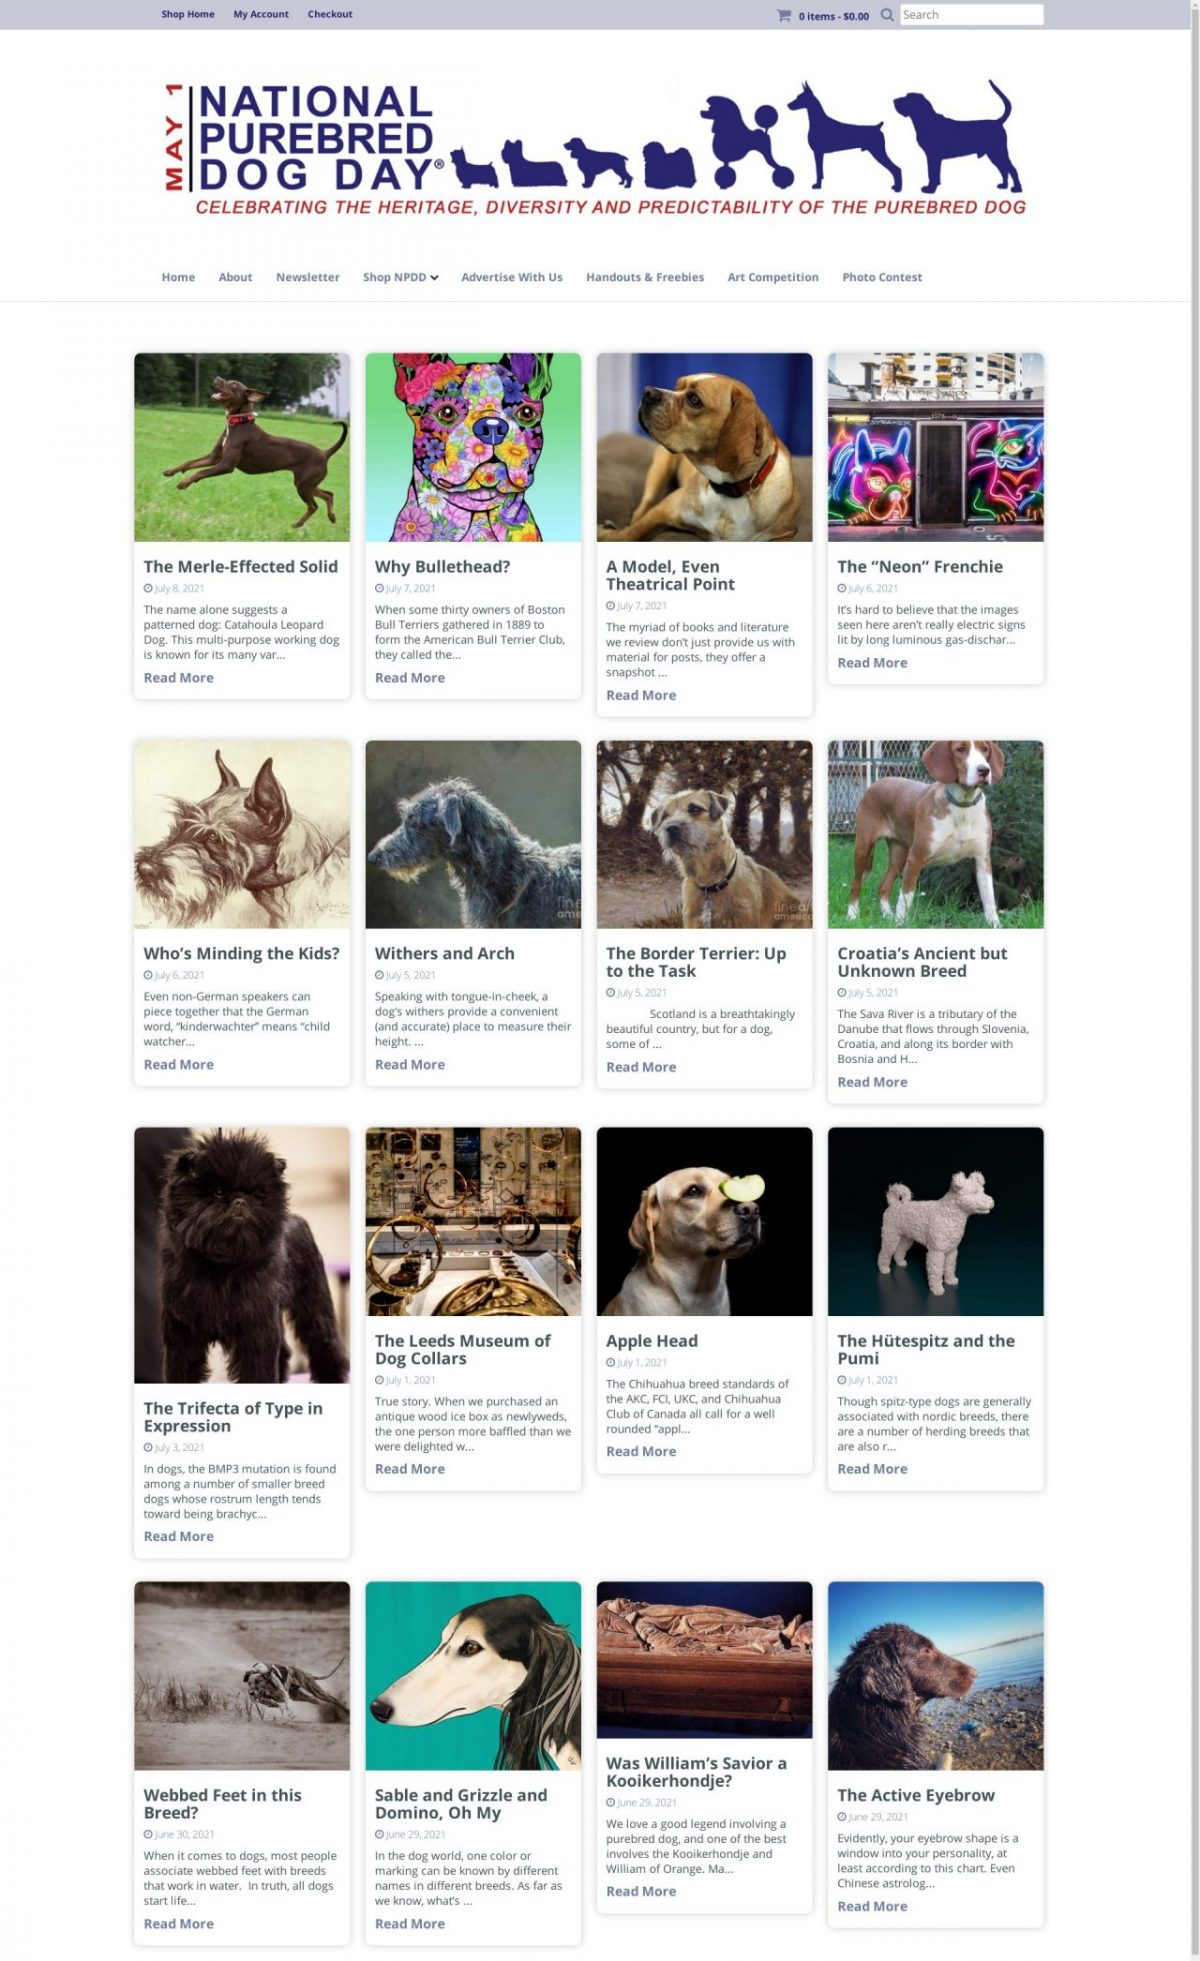 National Purebred Dog Day® Celebrating The Diversity Heritage And Predictability Of The Purebred Dog Scaled E1626206321399